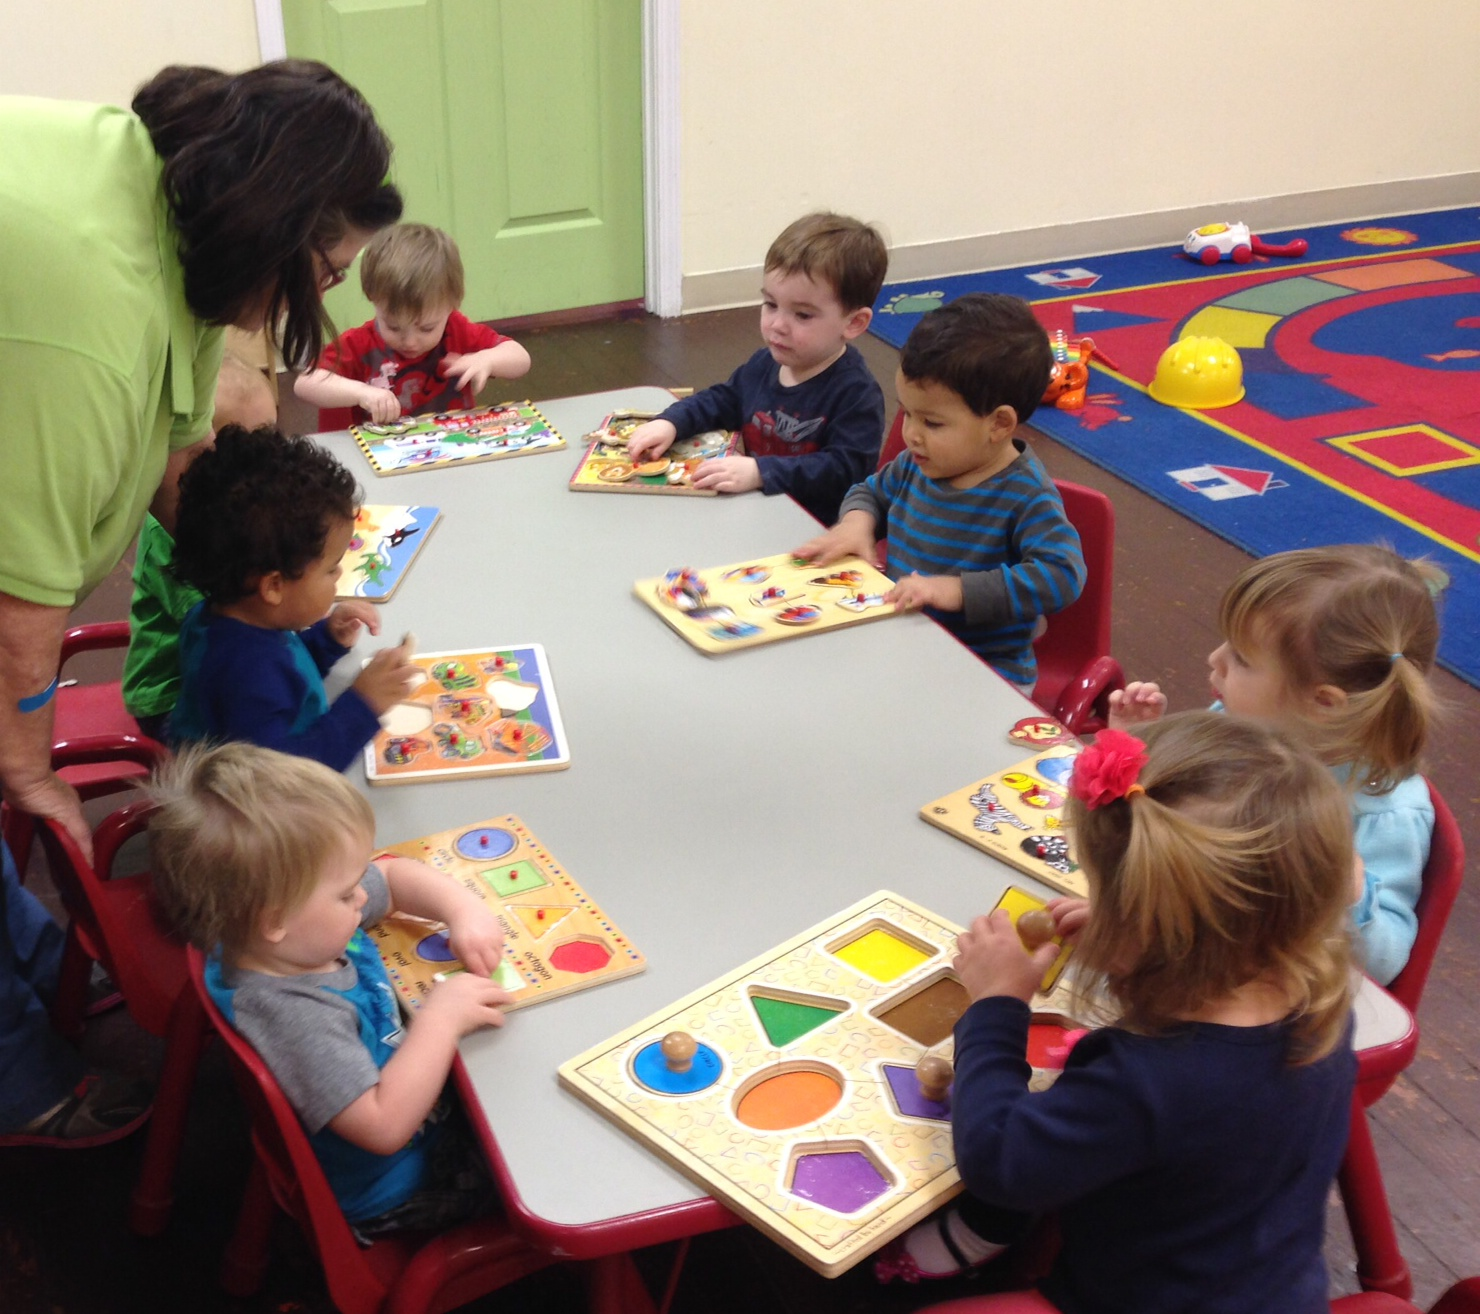 Pre-k 2 kids playing with puzzles